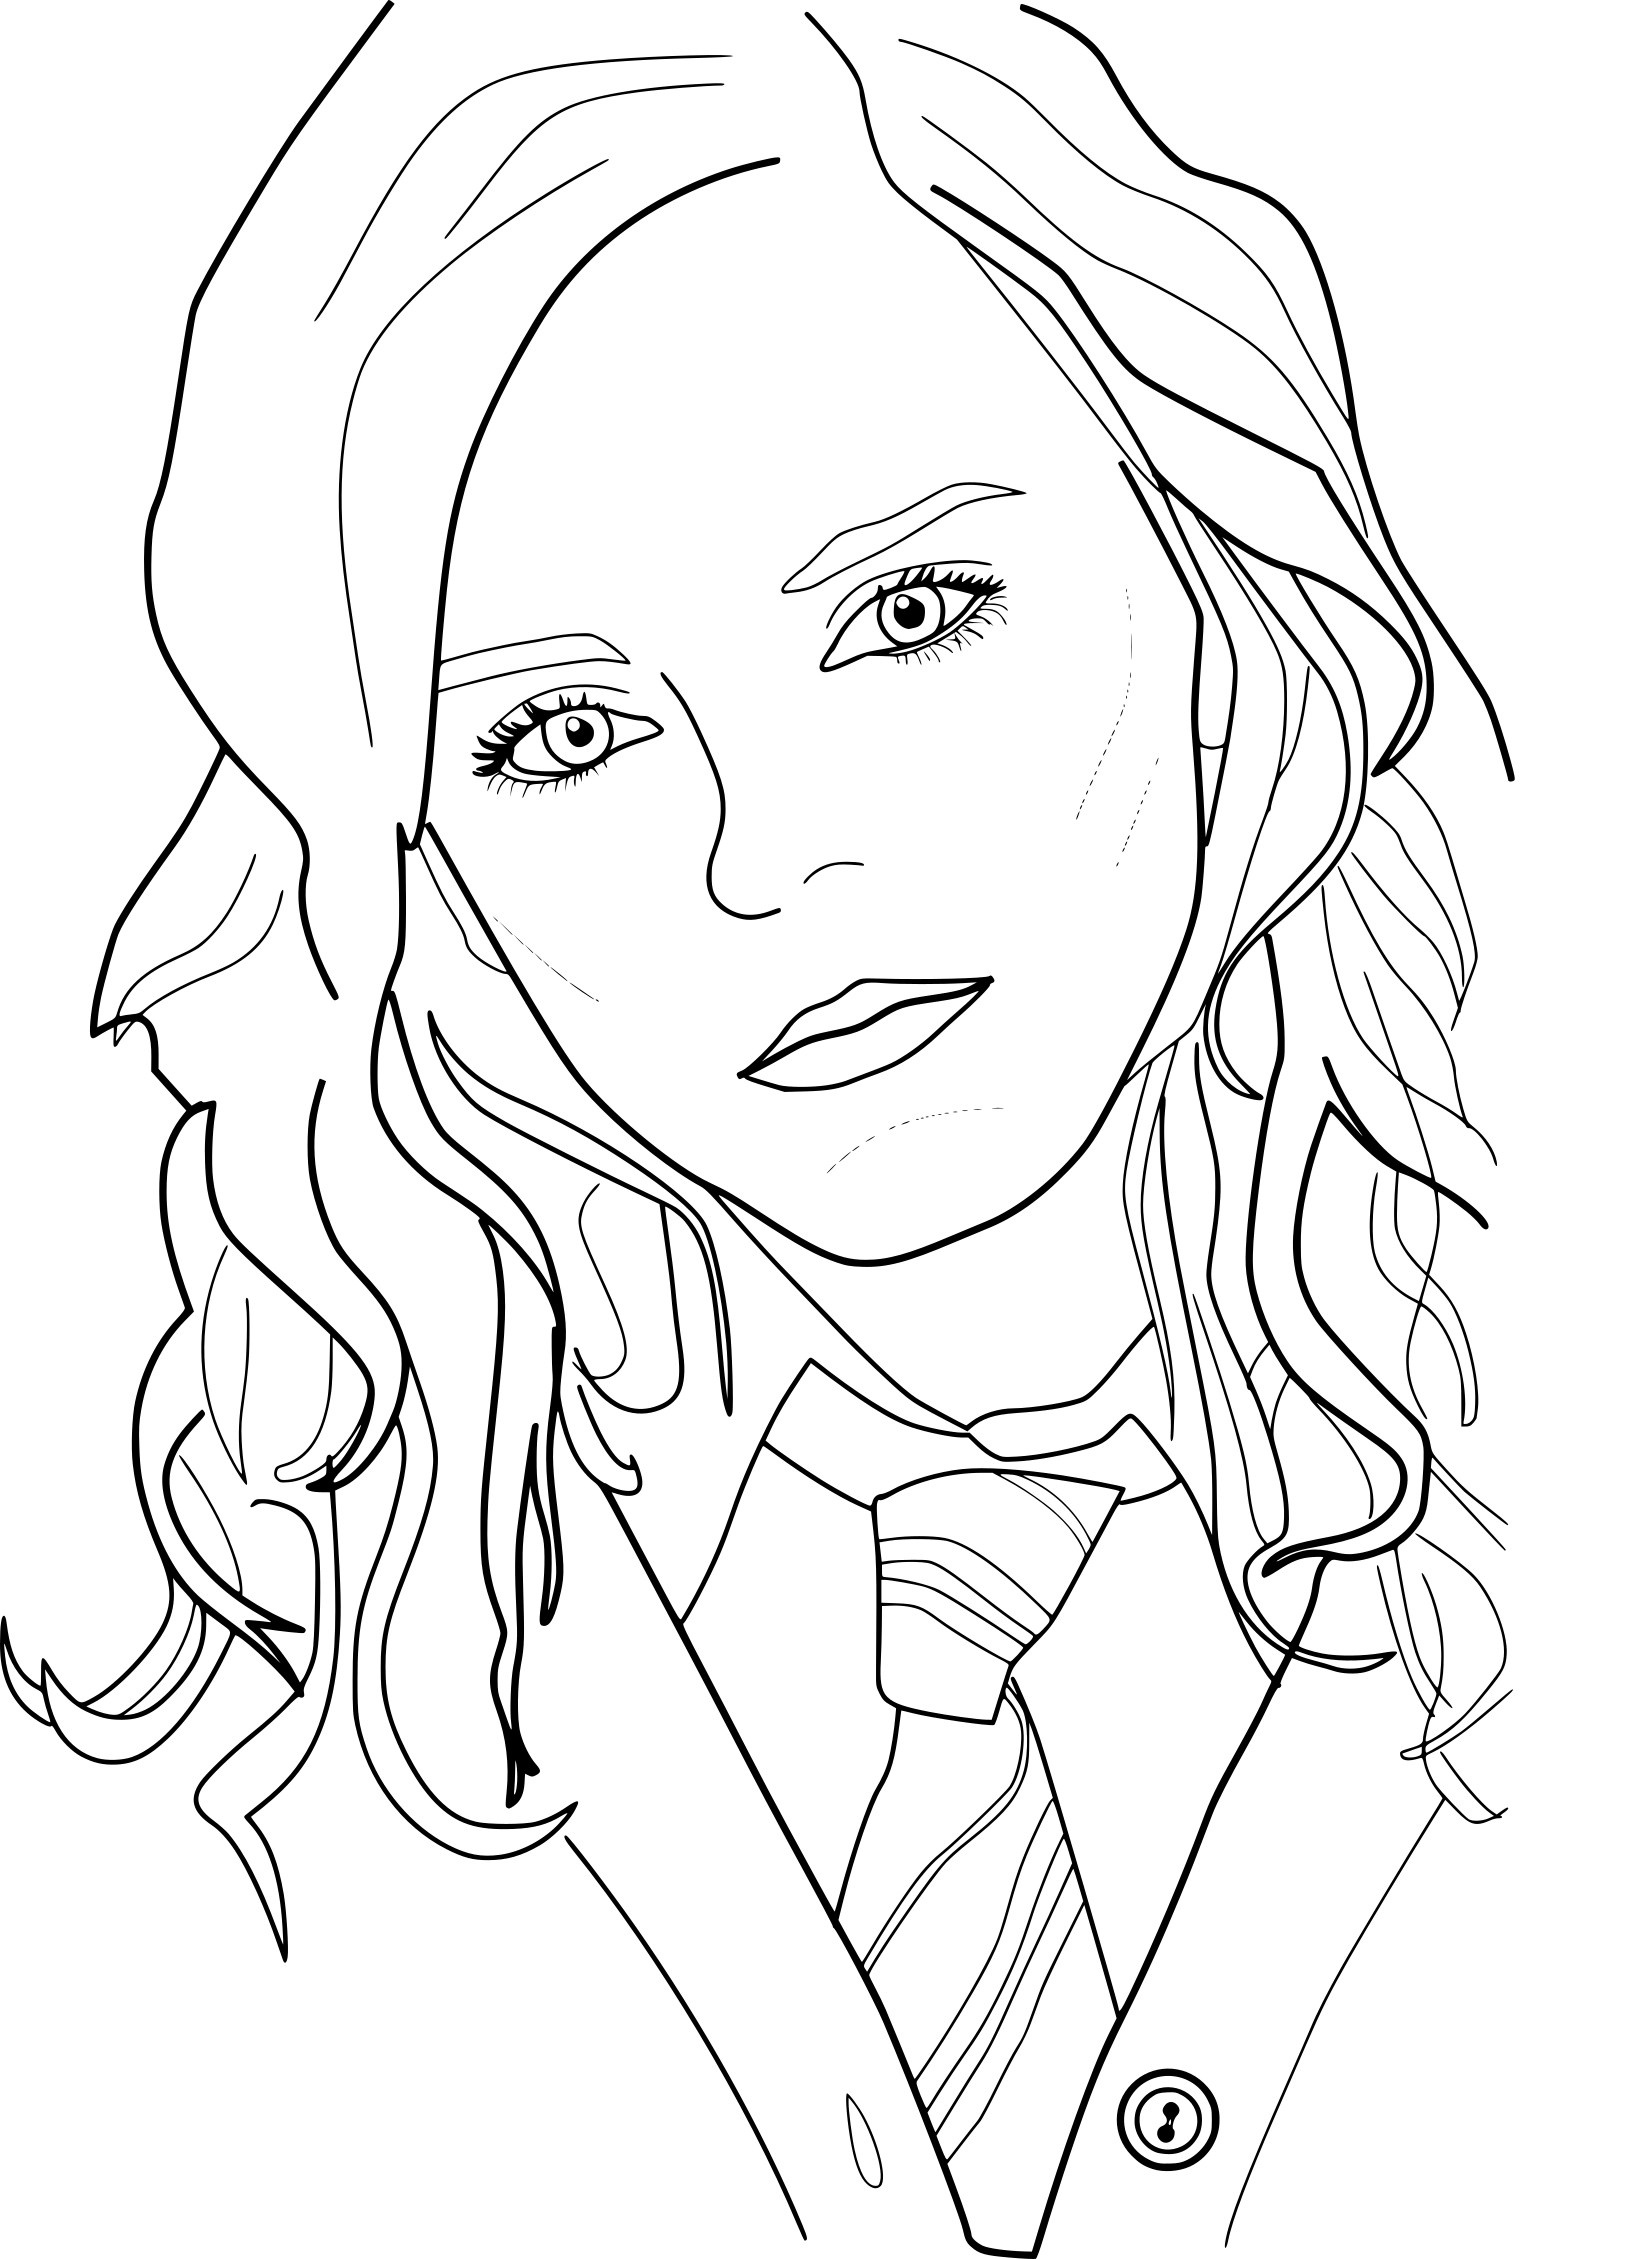 Harry Potter Coloring Page - Coloring Pages For Kids - Free Printable Harry Potter Coloring Pages